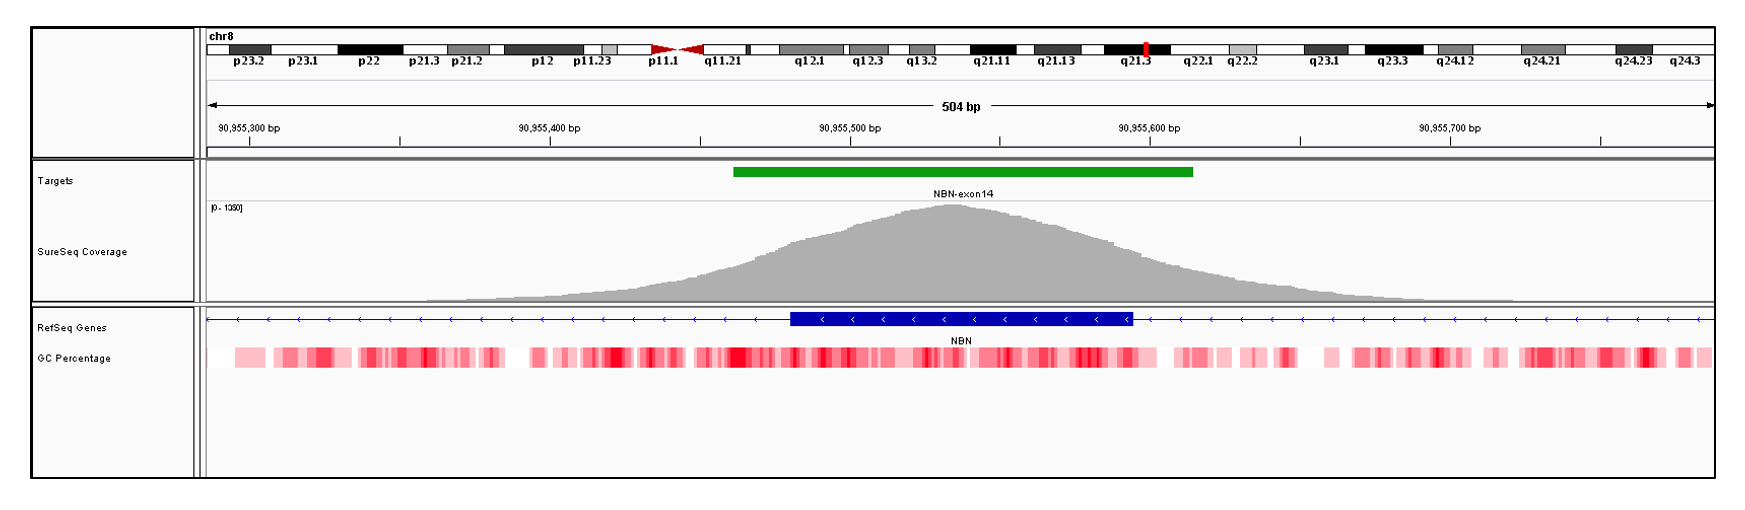 NBN Exon 14 (hg19 chr8:90955481-90955594). Depth of coverage per base (grey). Targeted region (green). Gene coding region as defined by RefSeq (blue). GC percentage (red). Image